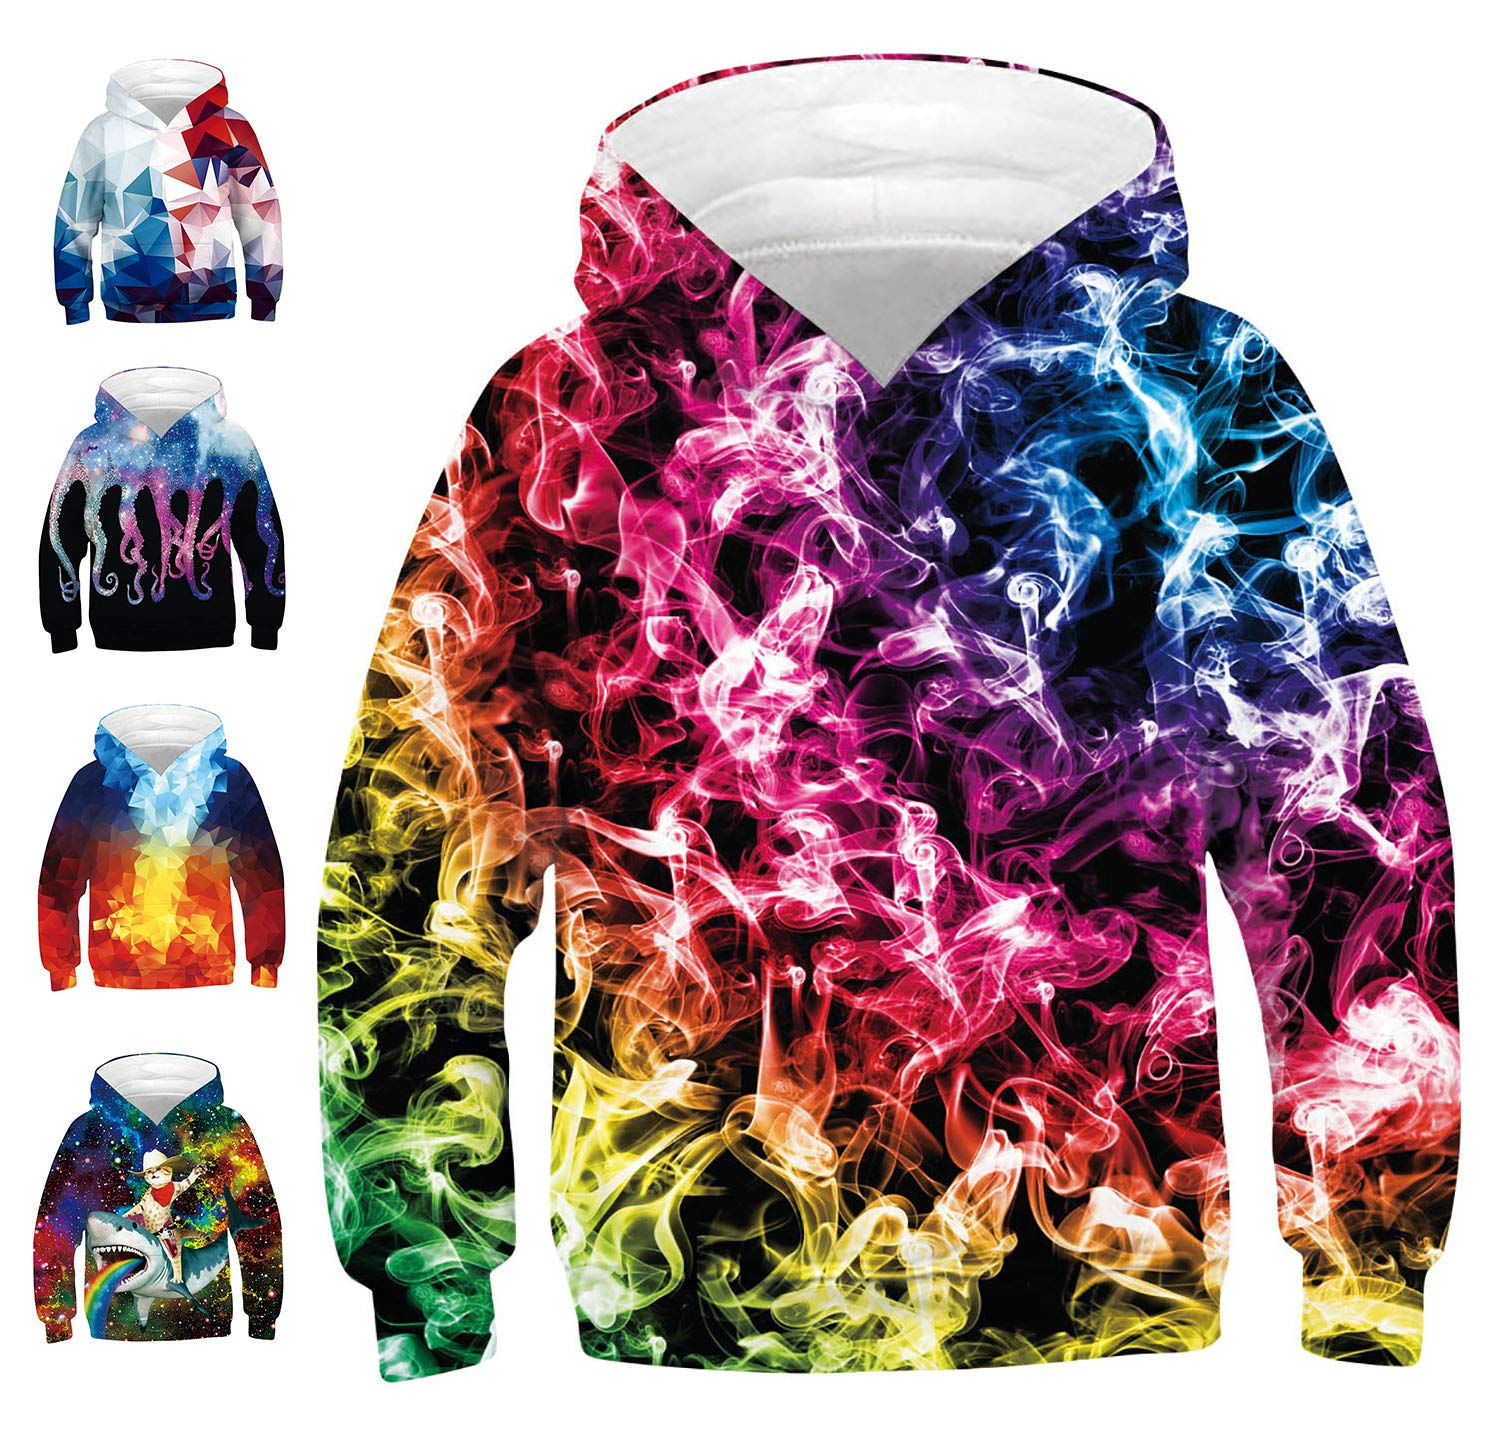 Super colorful hoodie sweatshirt that will turn heads